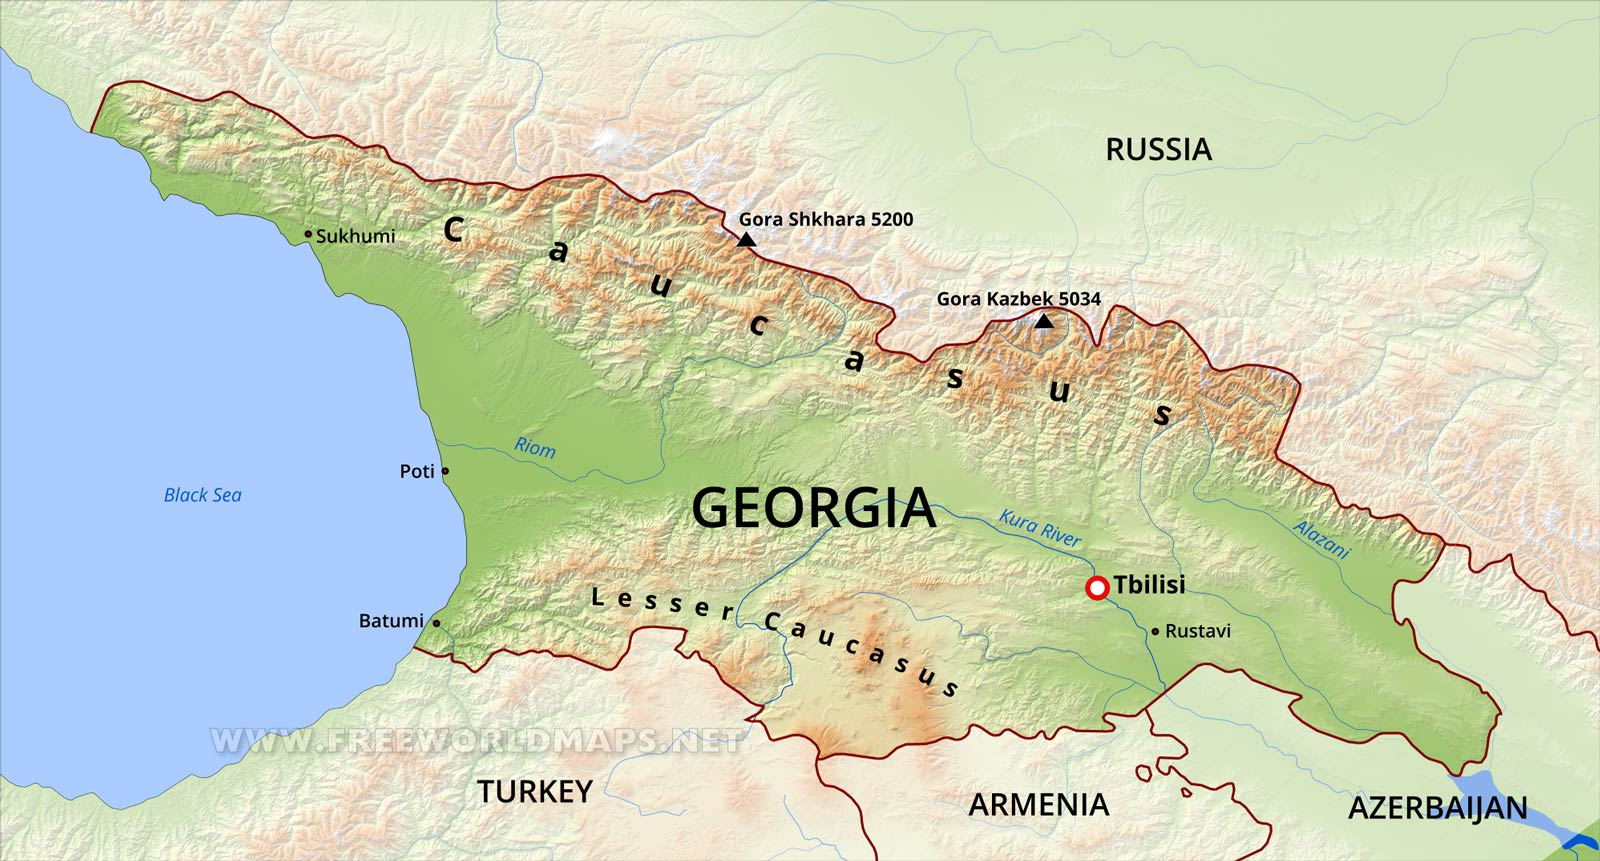 Georgia Physical Map - Georgia physical map